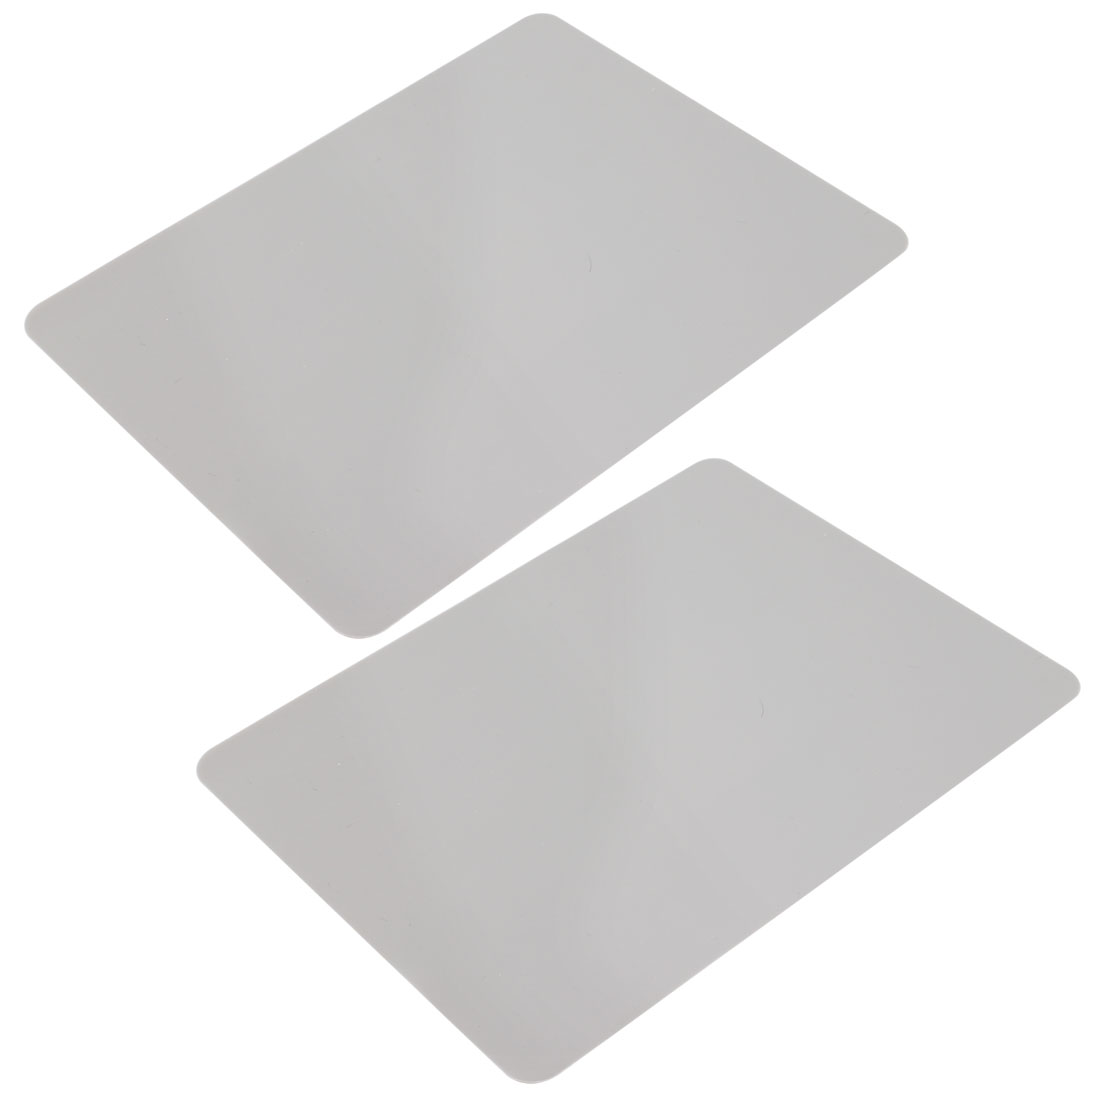 PC Notebook Gray Soft Silicone Optical Mouse Square Pad Mat 2 Pcs